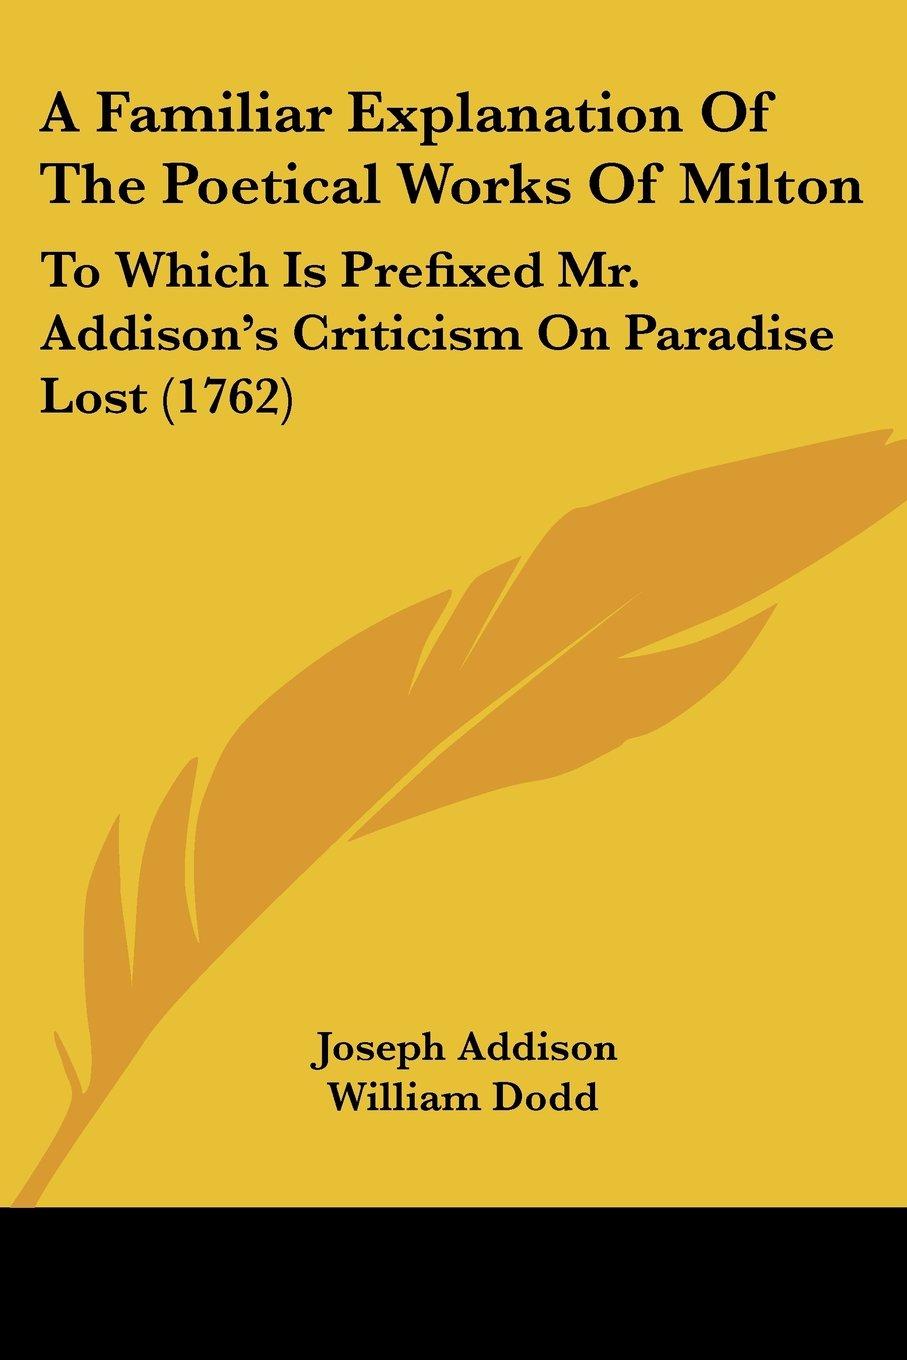 Download A Familiar Explanation Of The Poetical Works Of Milton: To Which Is Prefixed Mr. Addison's Criticism On Paradise Lost (1762) pdf